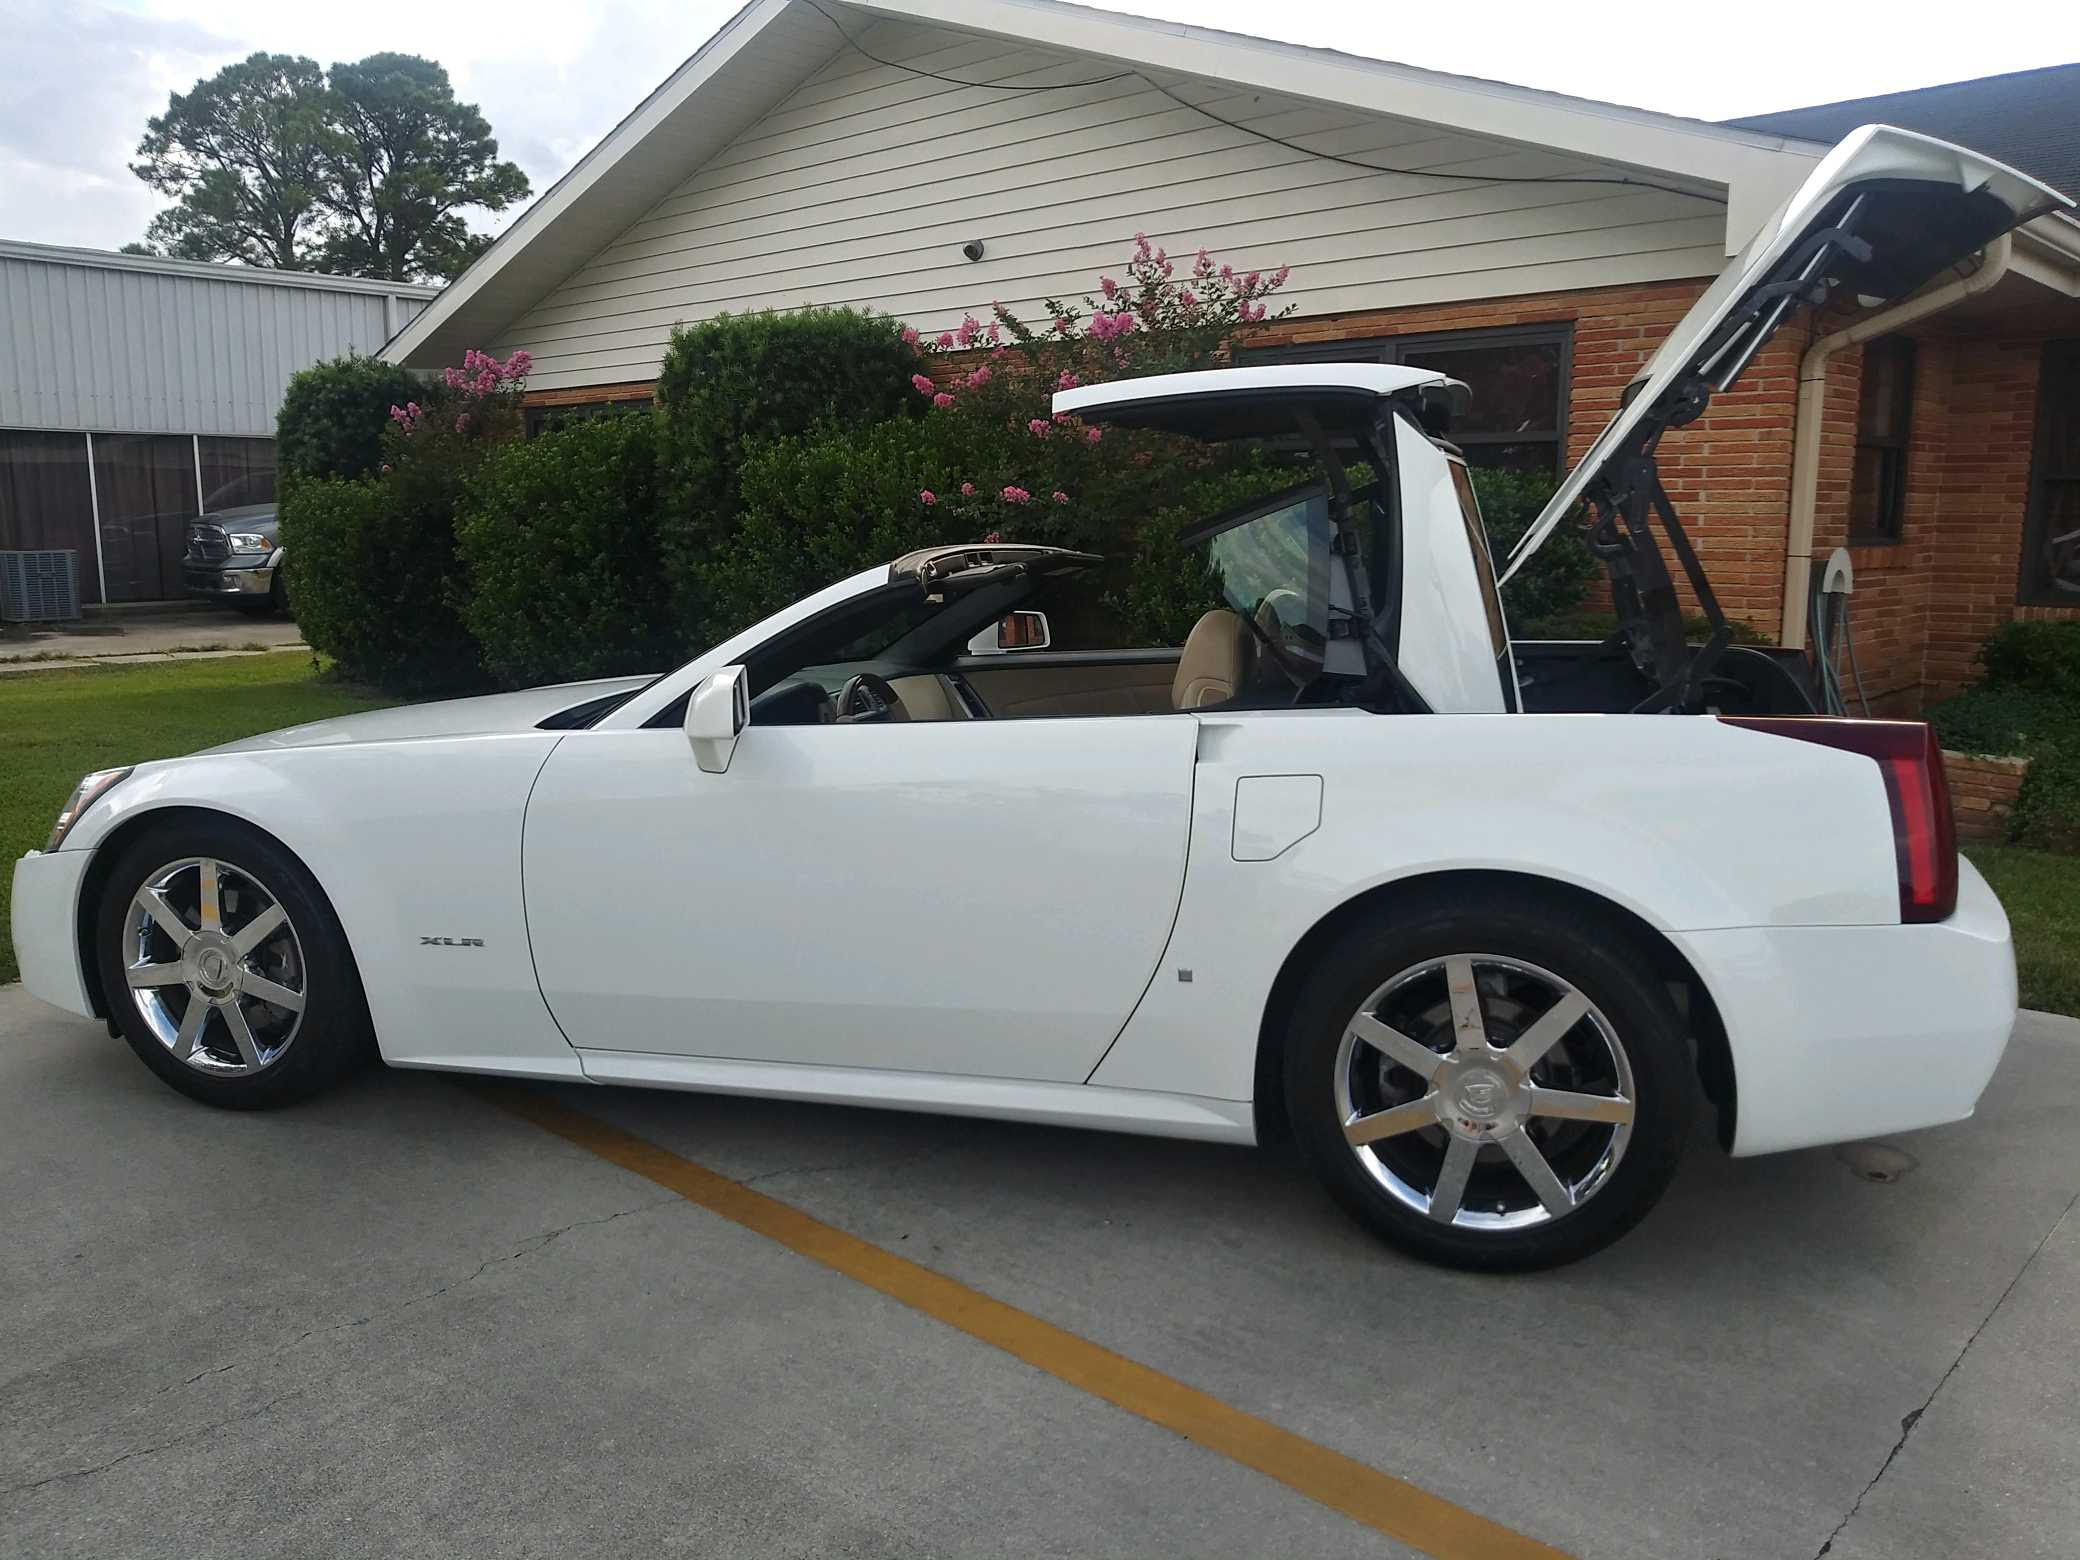 10th Image of a 2008 CADILLAC XLR ROADSTER